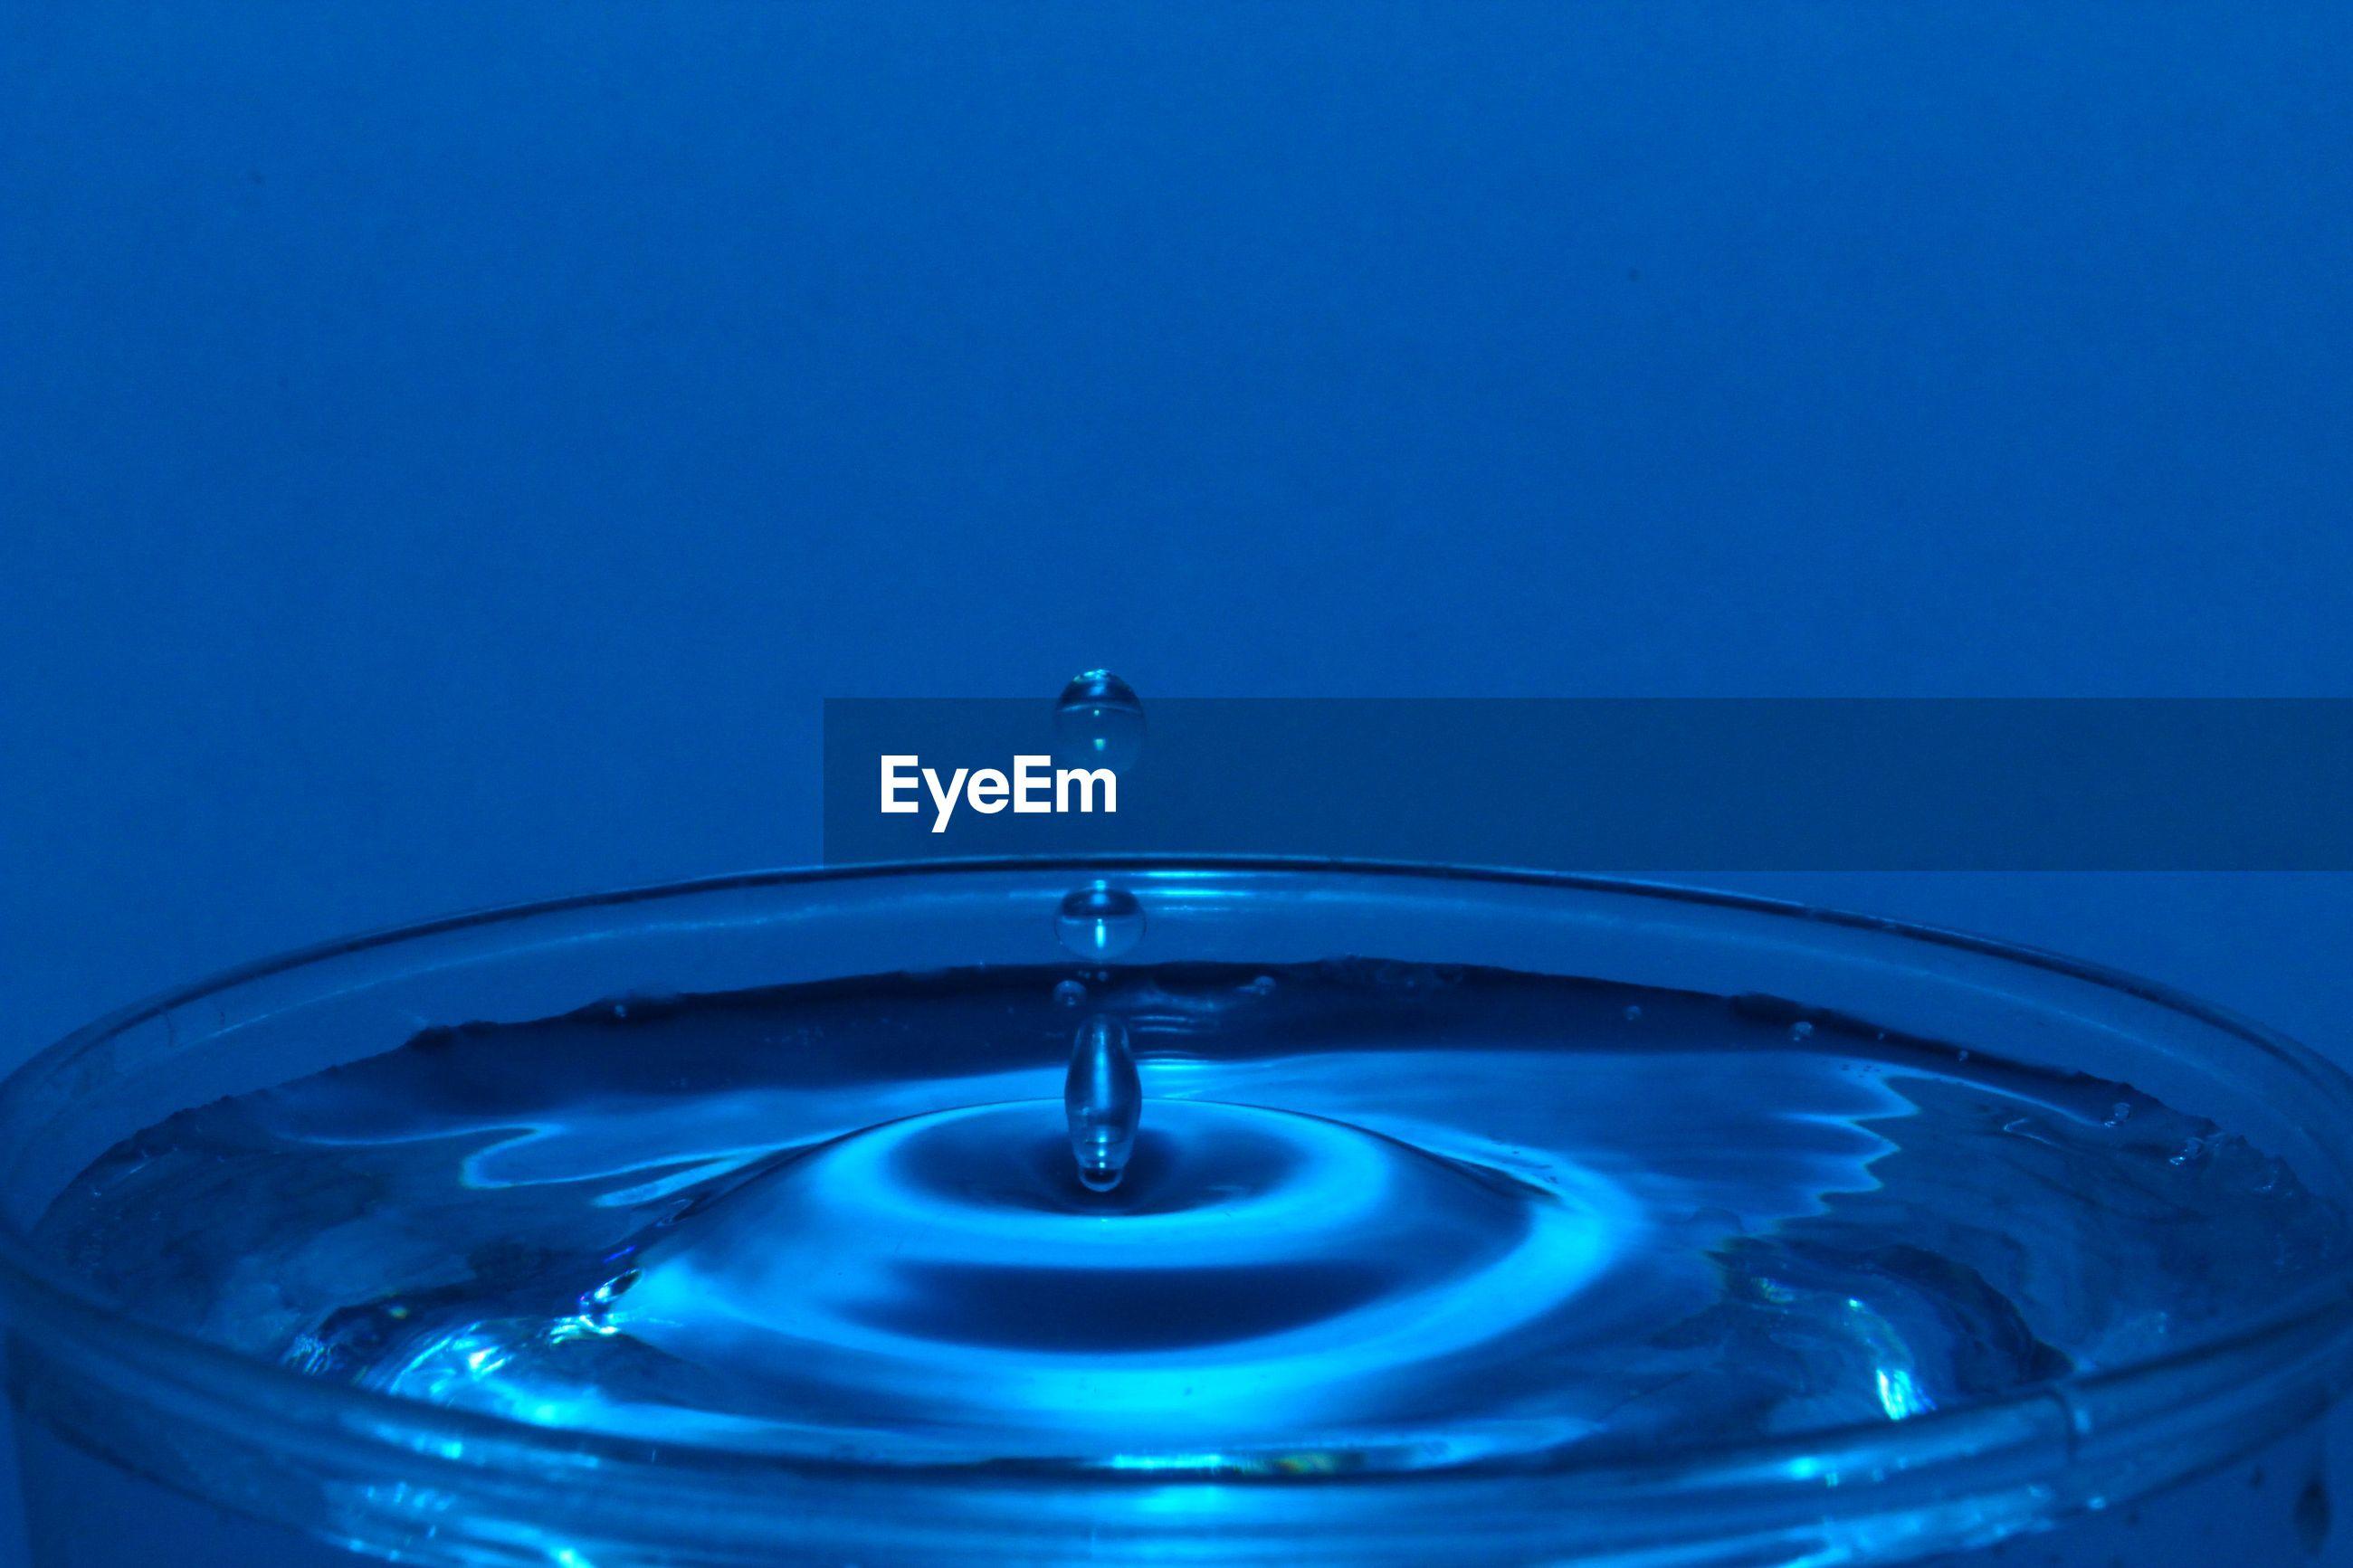 CLOSE-UP OF WATER DROP ON BLUE SURFACE